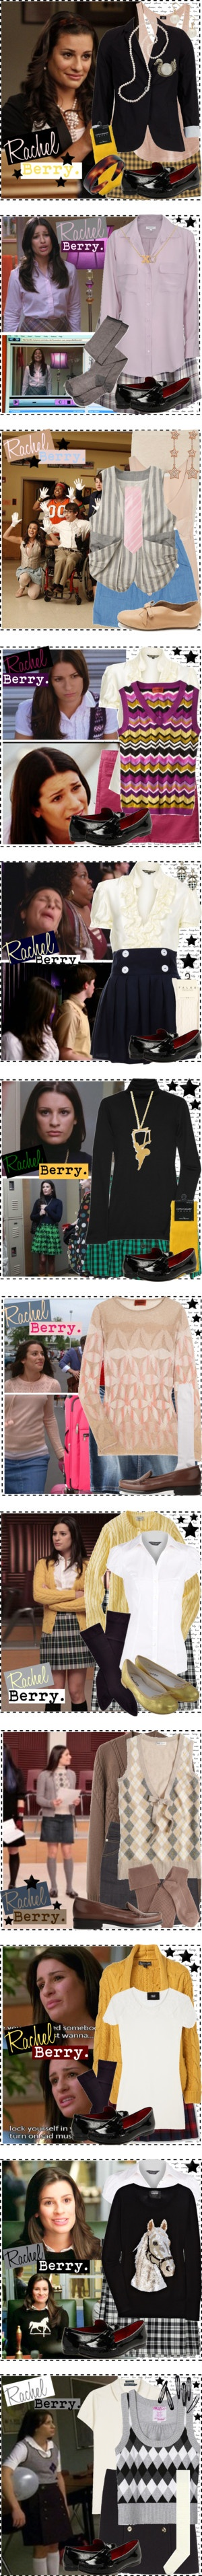 """Rachel Berry [Glee]."" by silver-screen-style ❤ liked on Polyvore"